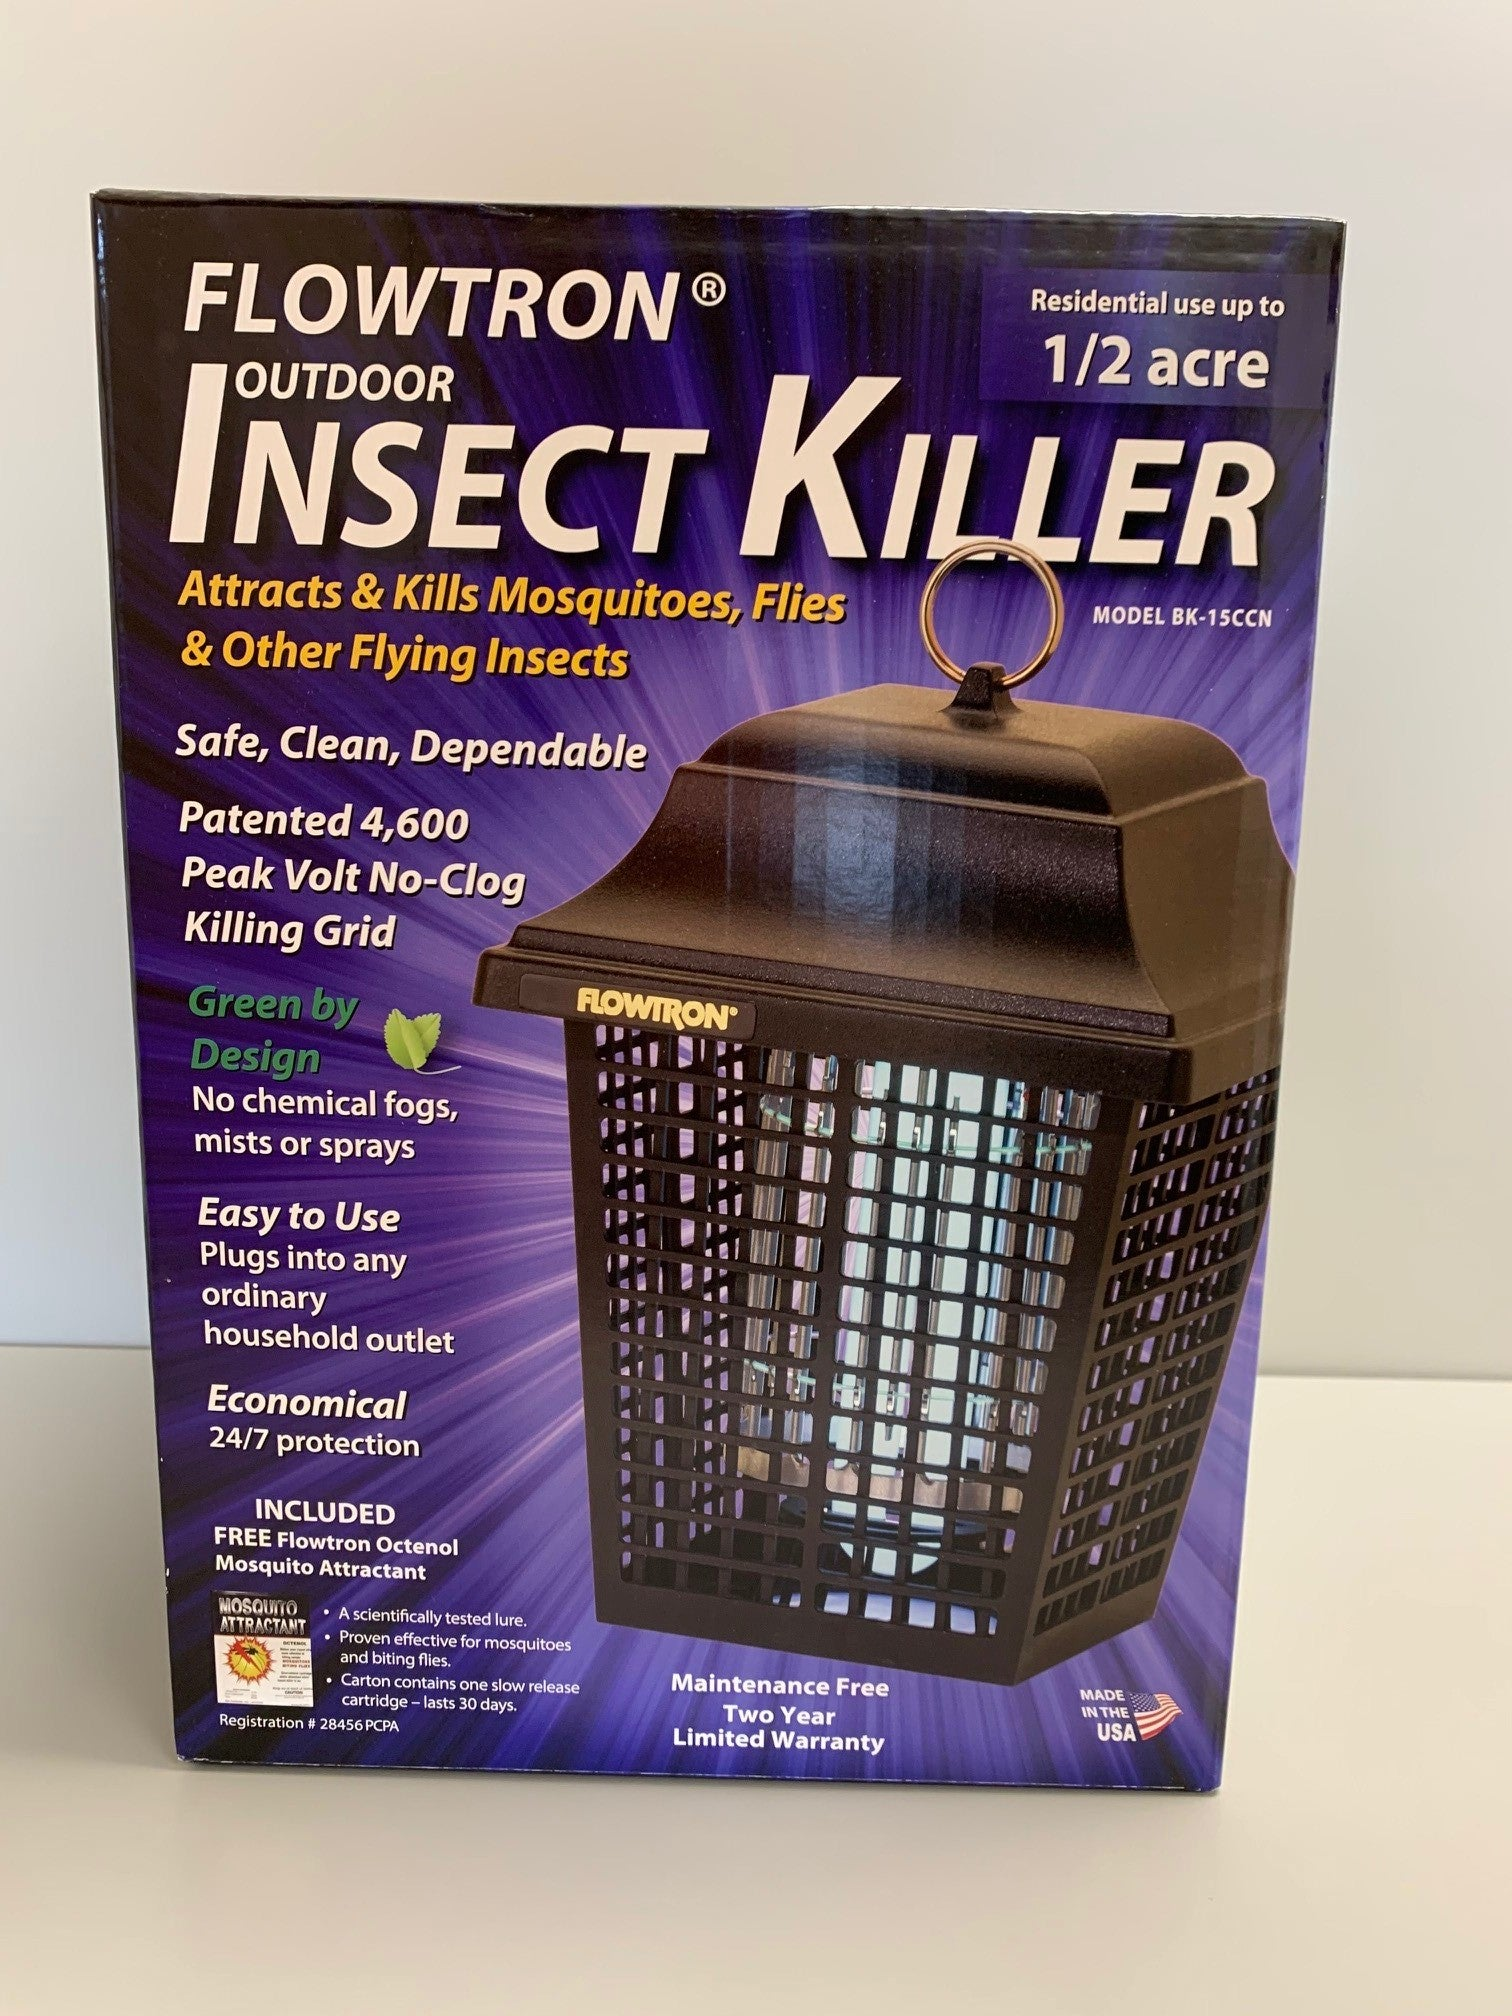 Flowtron Insect Killer